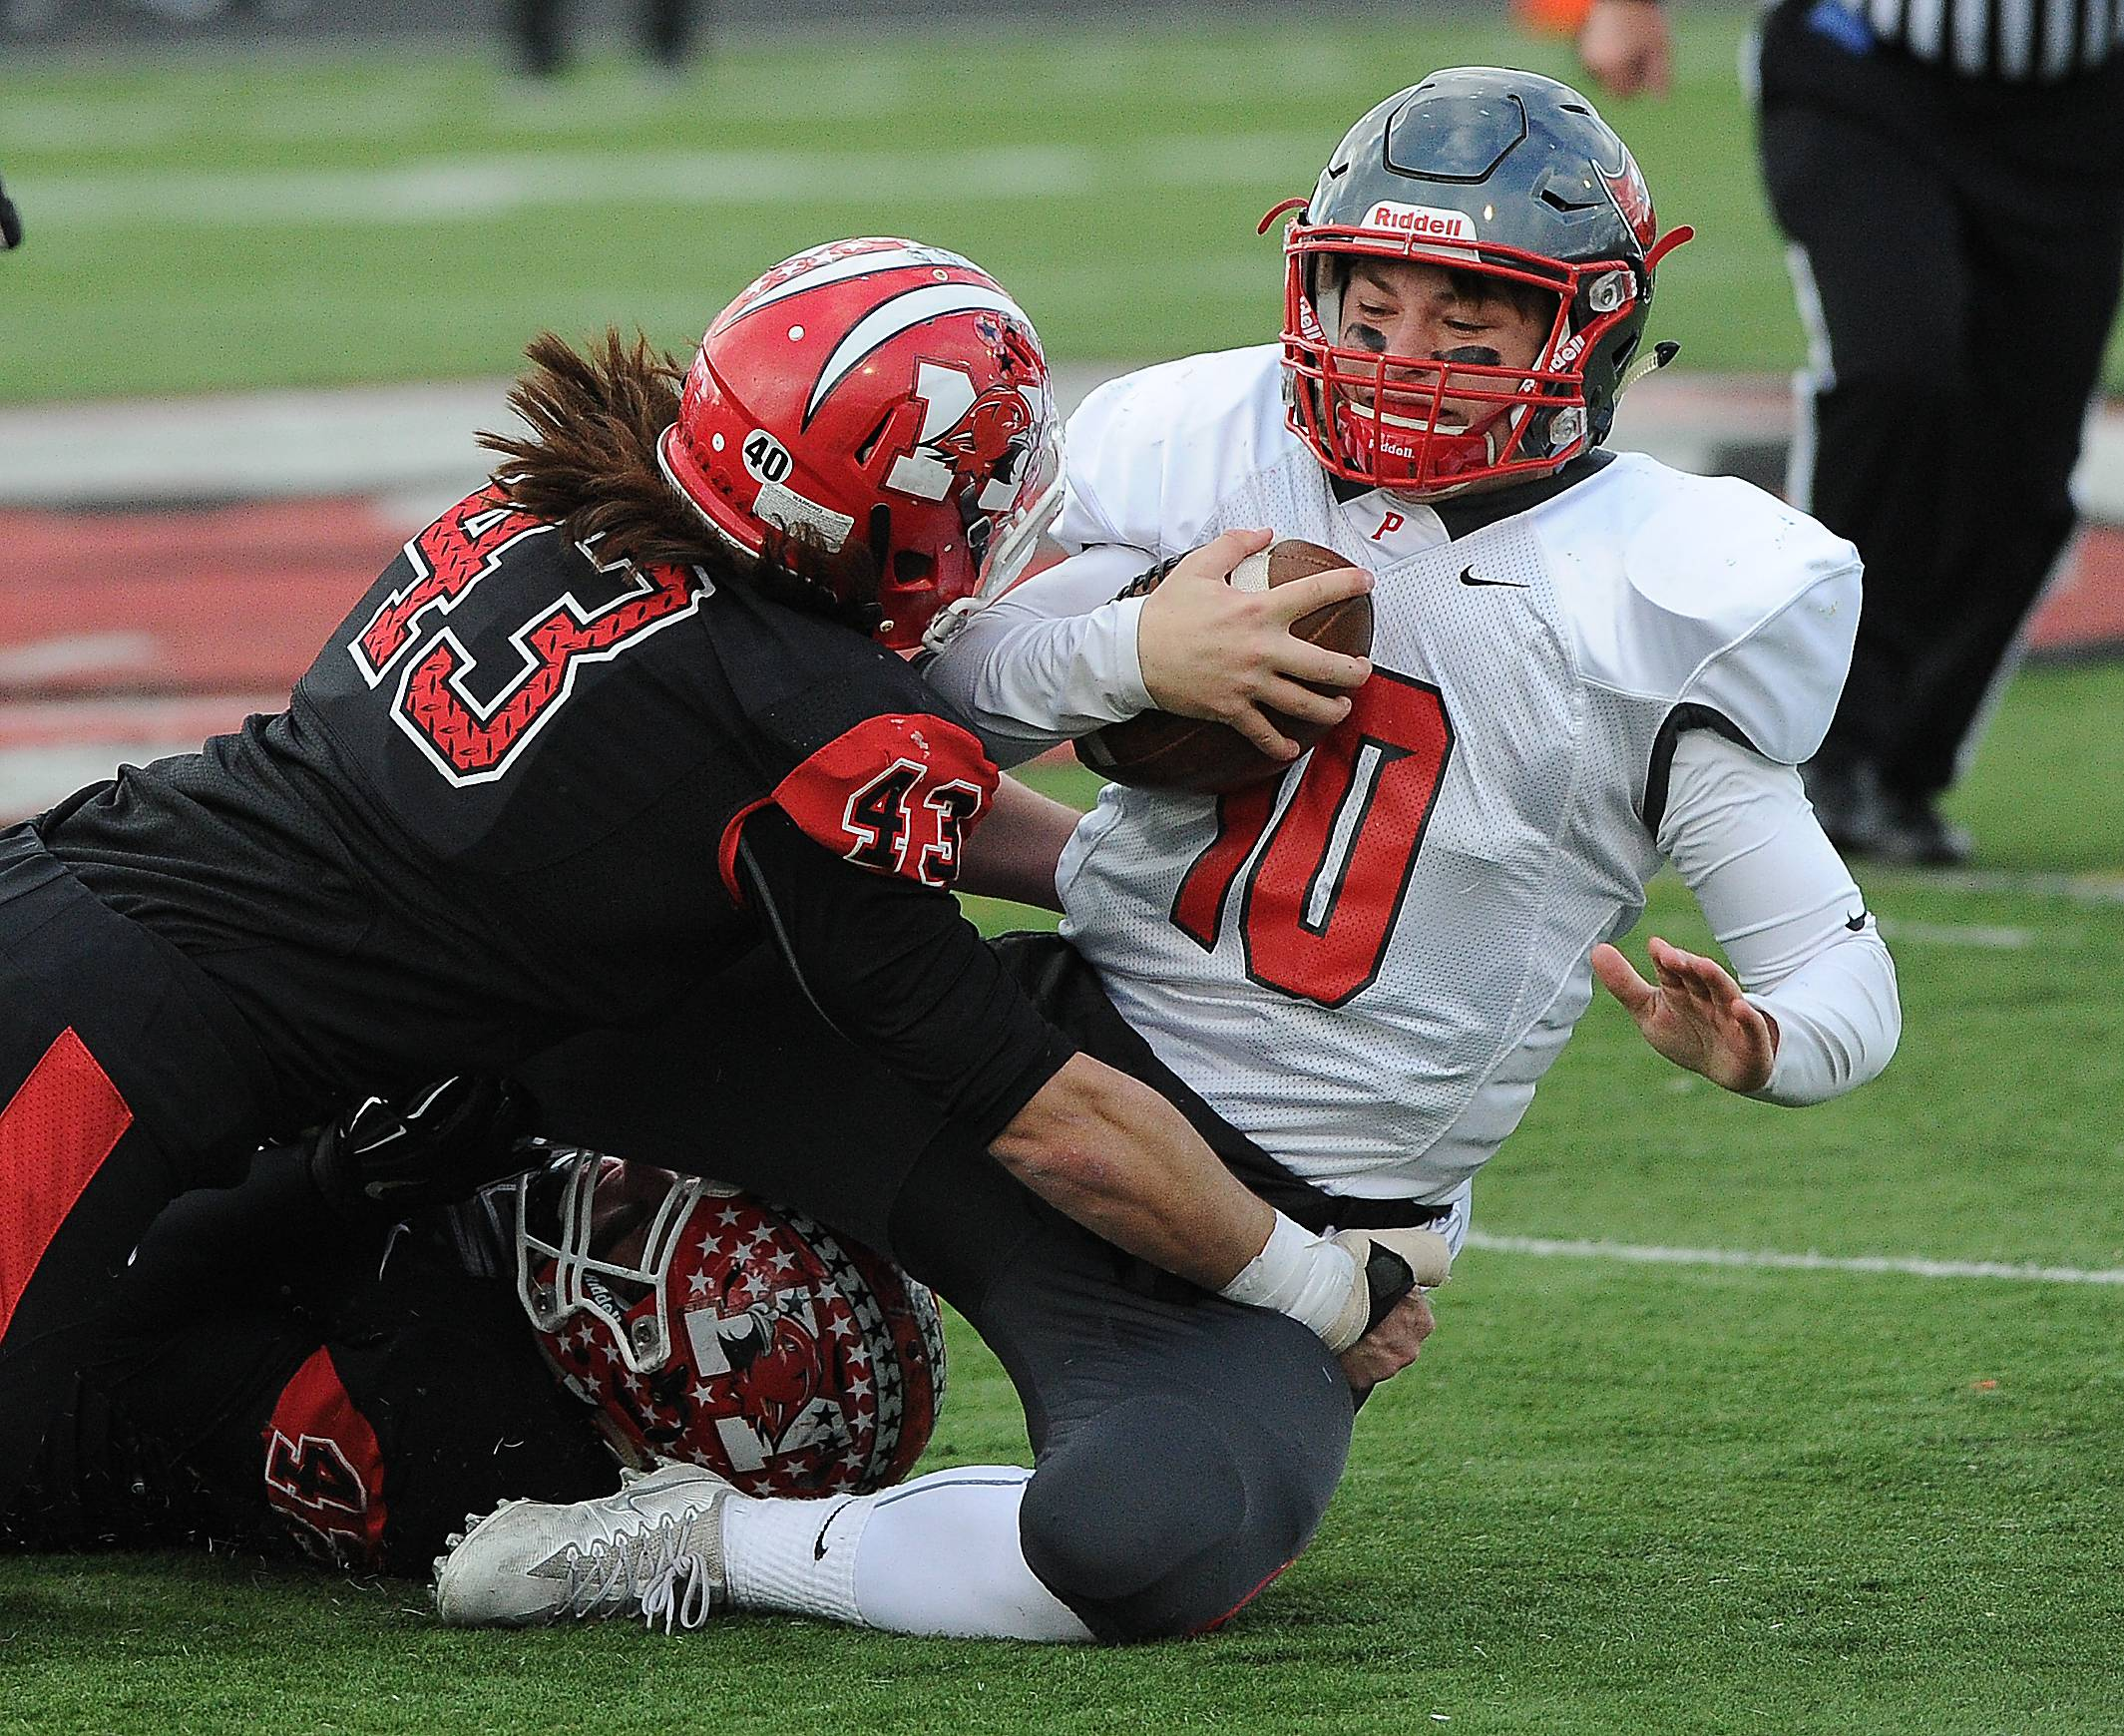 Palatine quarterback DJ Angelaccio gets jammed up by Maine South Mark Canizares in the first half in Park Ridge on Saturday.